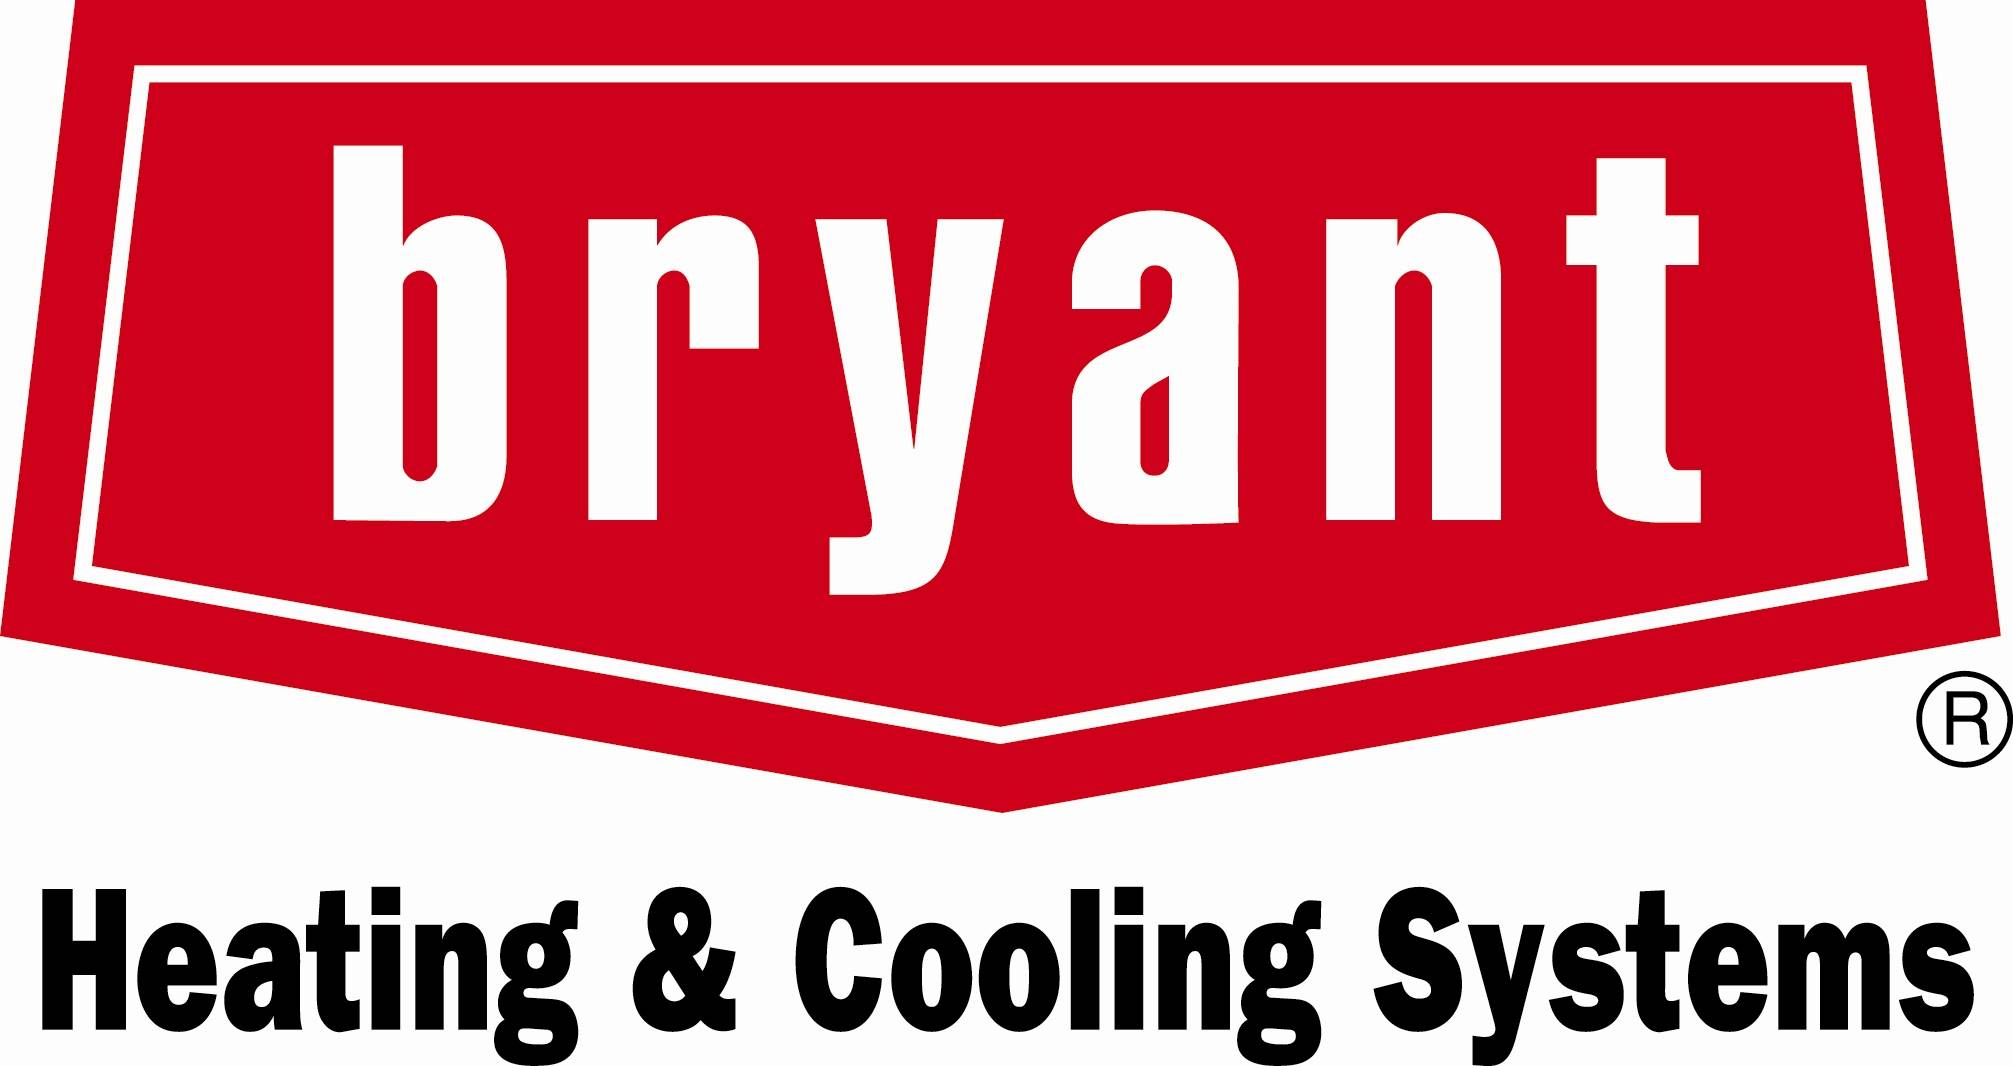 We provide heat pump repairs & installations for Bryant HVAC products in the Charlotte NC, Harrisburg NC, Huntersville NC, Matthews NC, Concord NC, Cornelius NC and many more areas